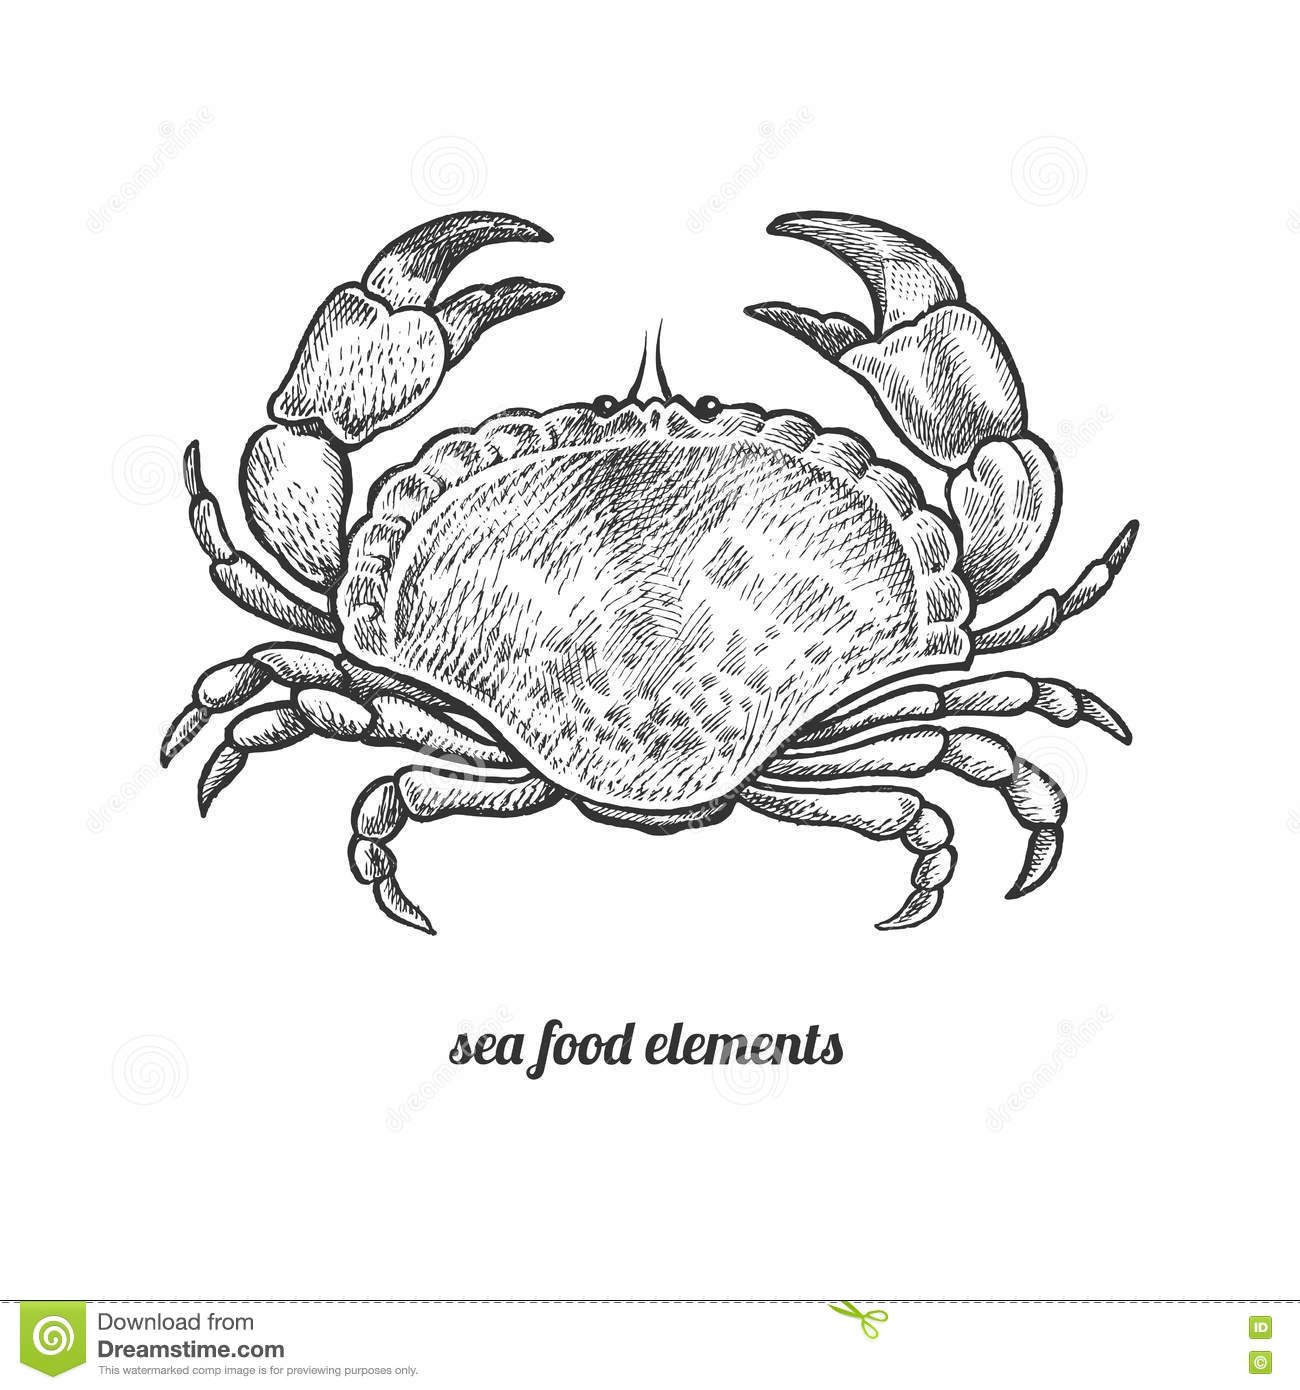 isolated image crab on white background stock vector illustration Food Chains Starting with the Sun in the Ocean seafood vector illustration isolated image on white background vintage style hand drawn seafood image